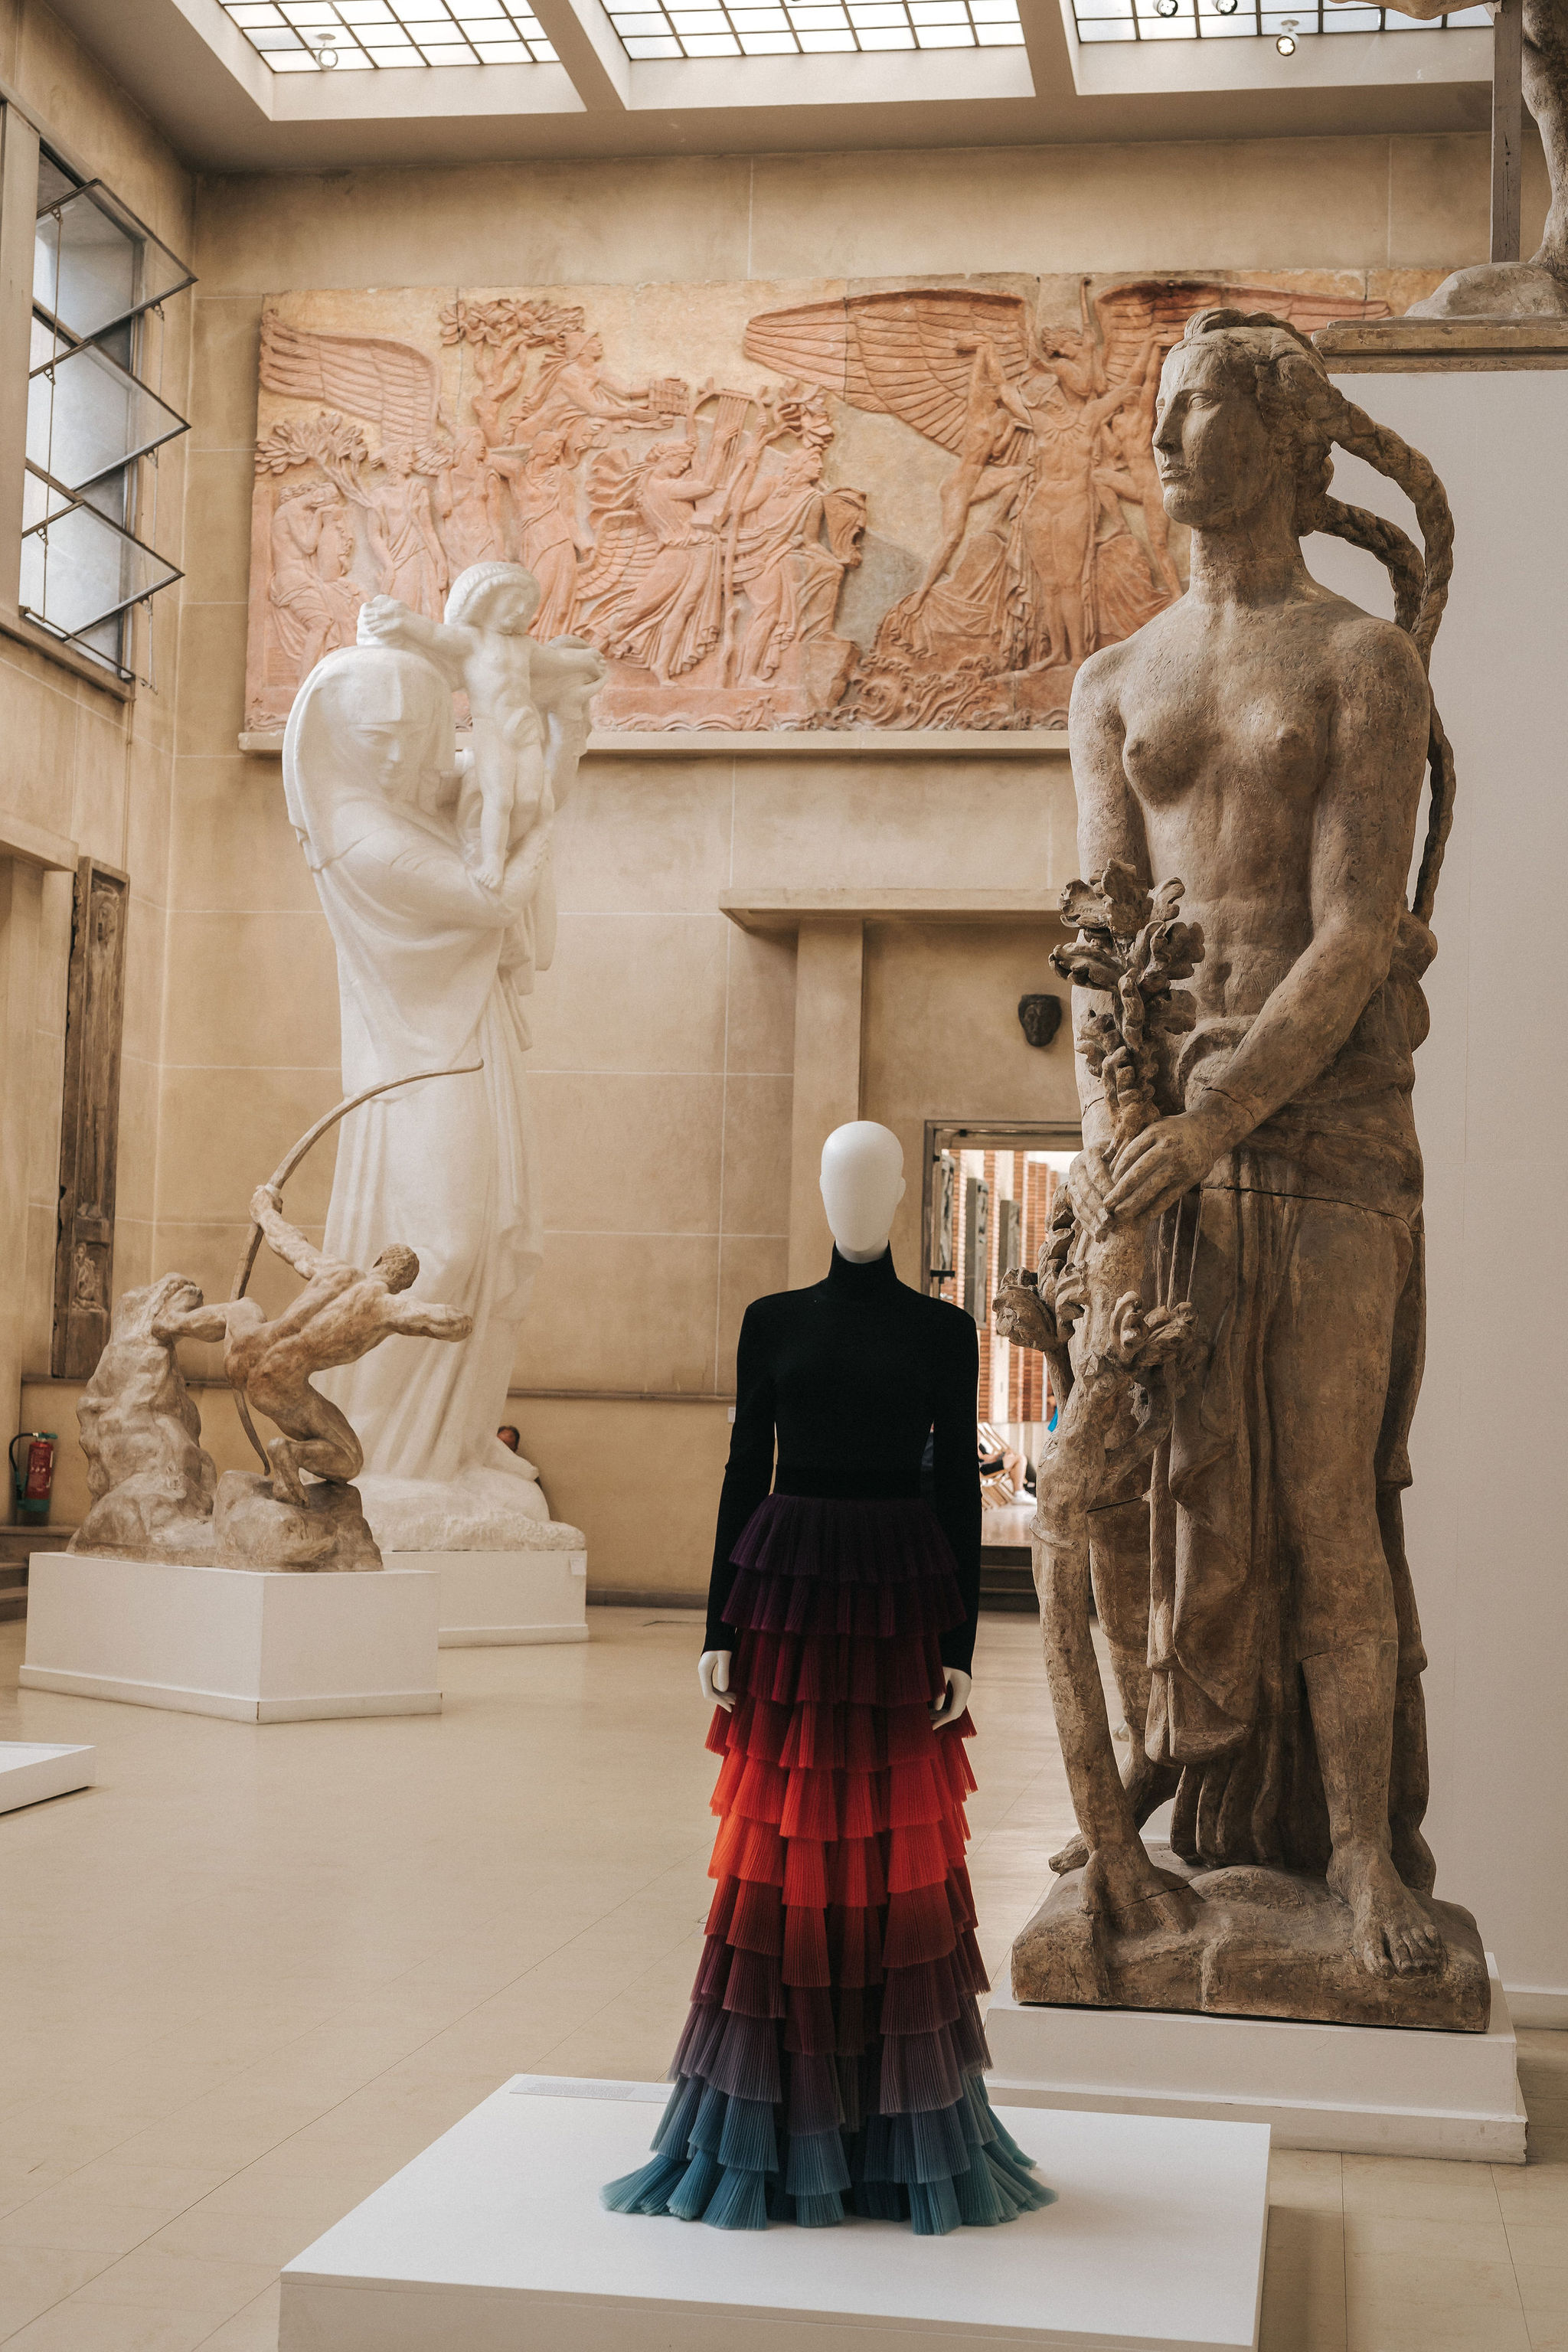 fashion and art museum bourdelle iheartparisfr.jpg